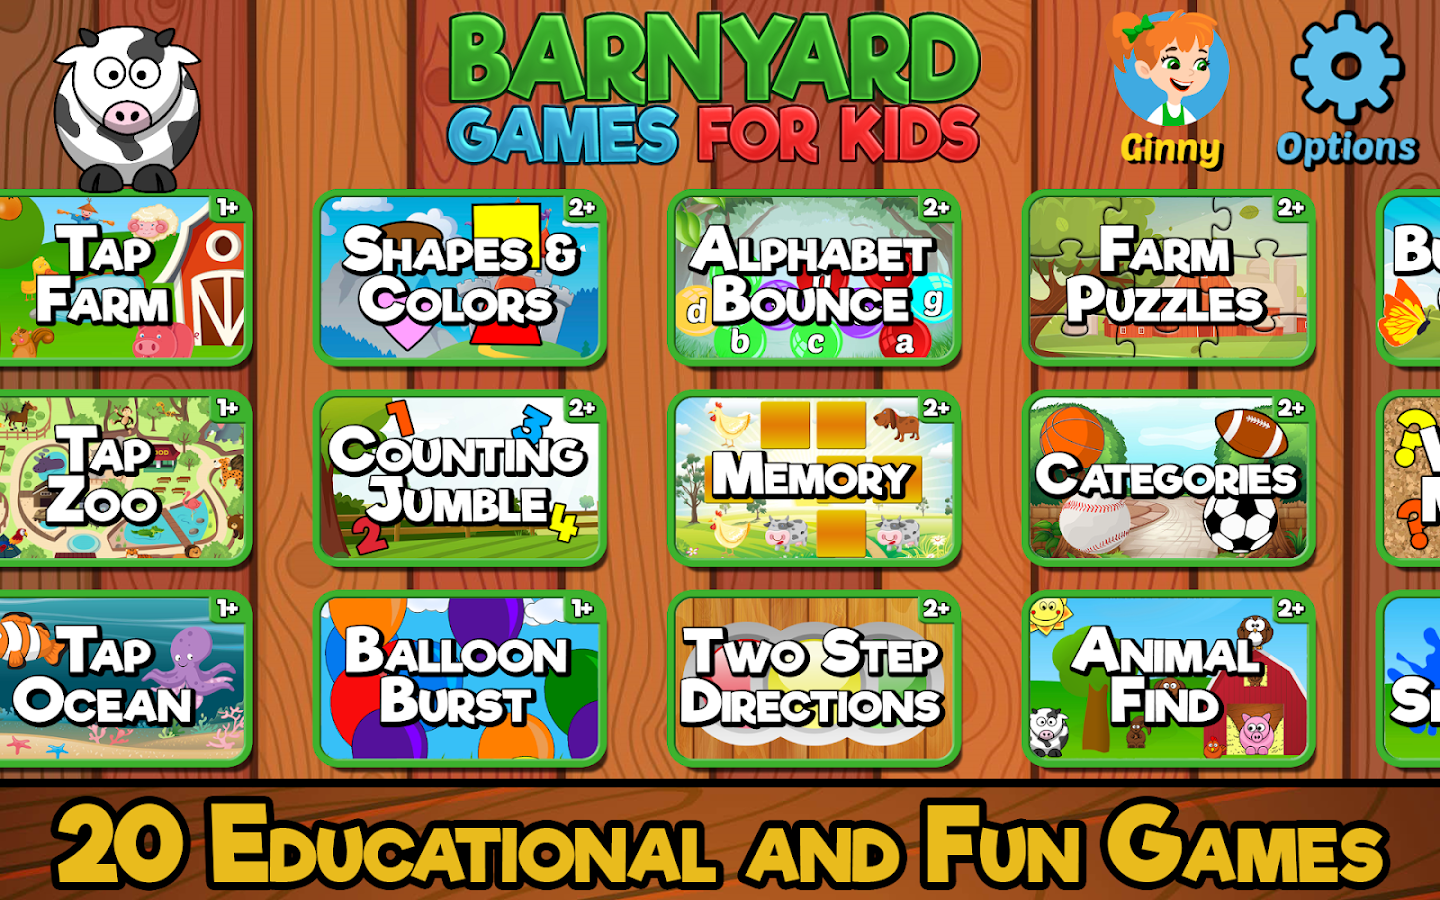 Barnyard Games For Kids 6 0 APK Download - Android